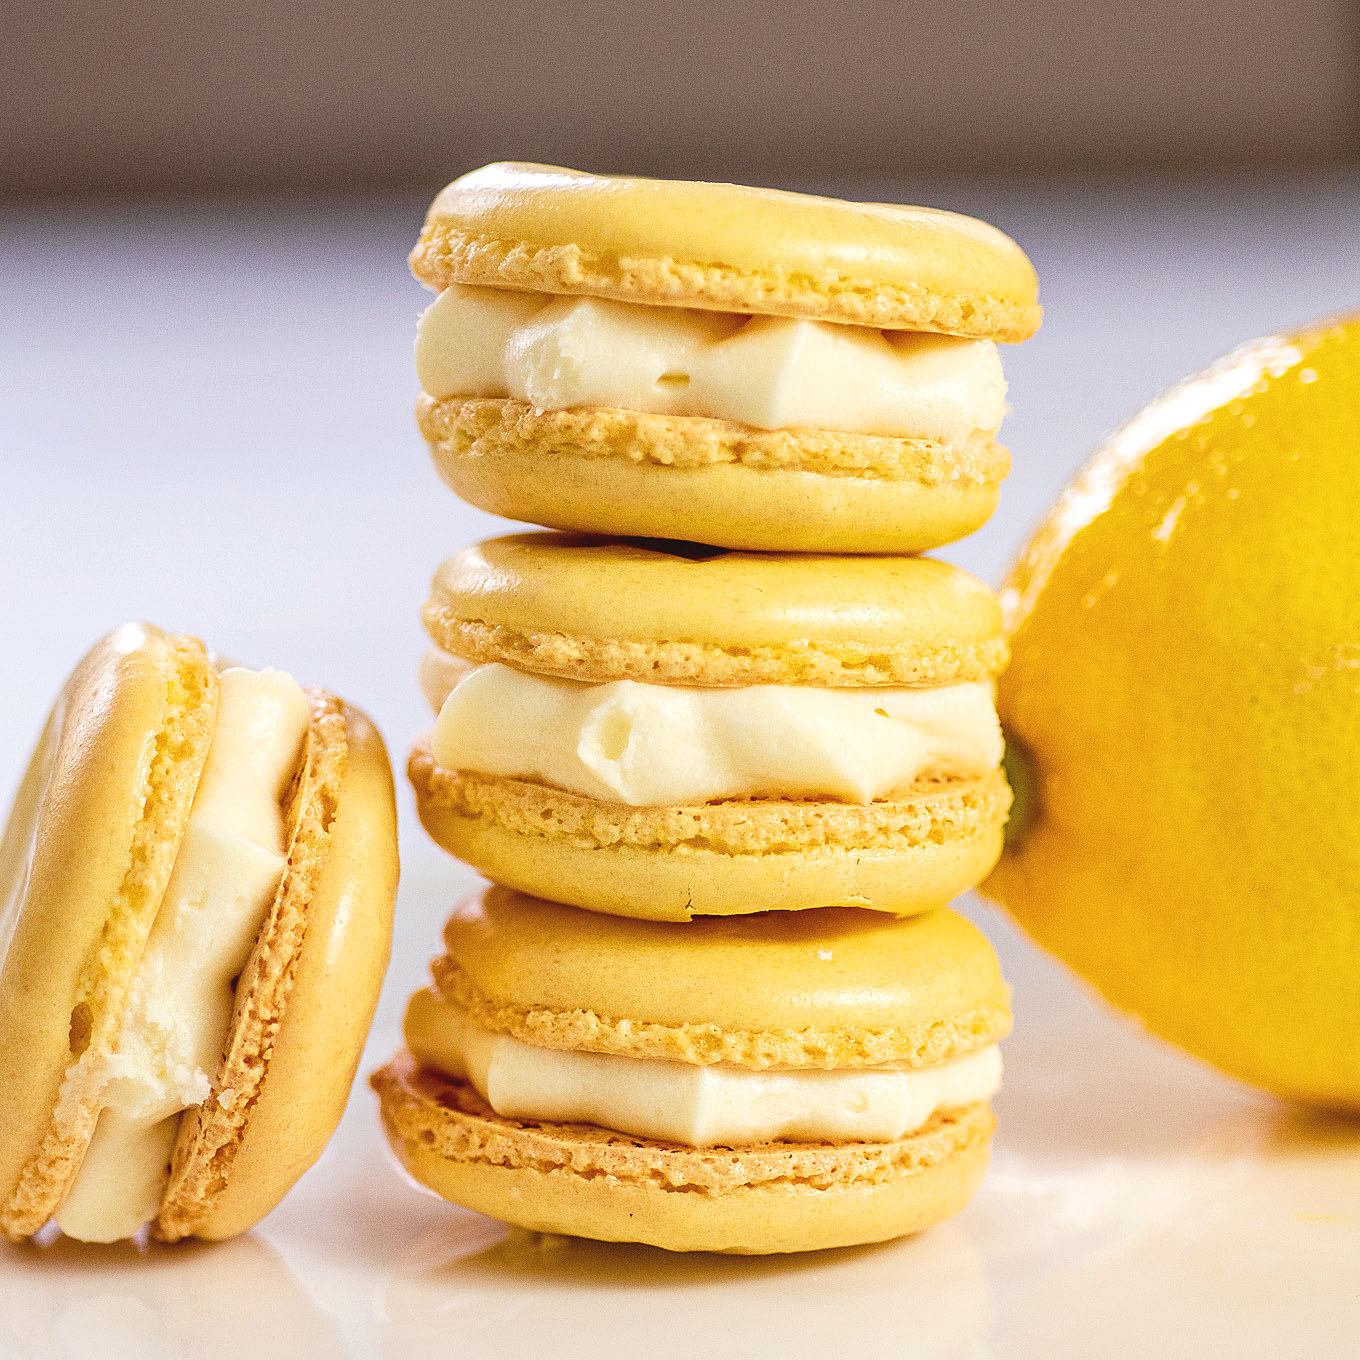 A stack of three lemon macarons